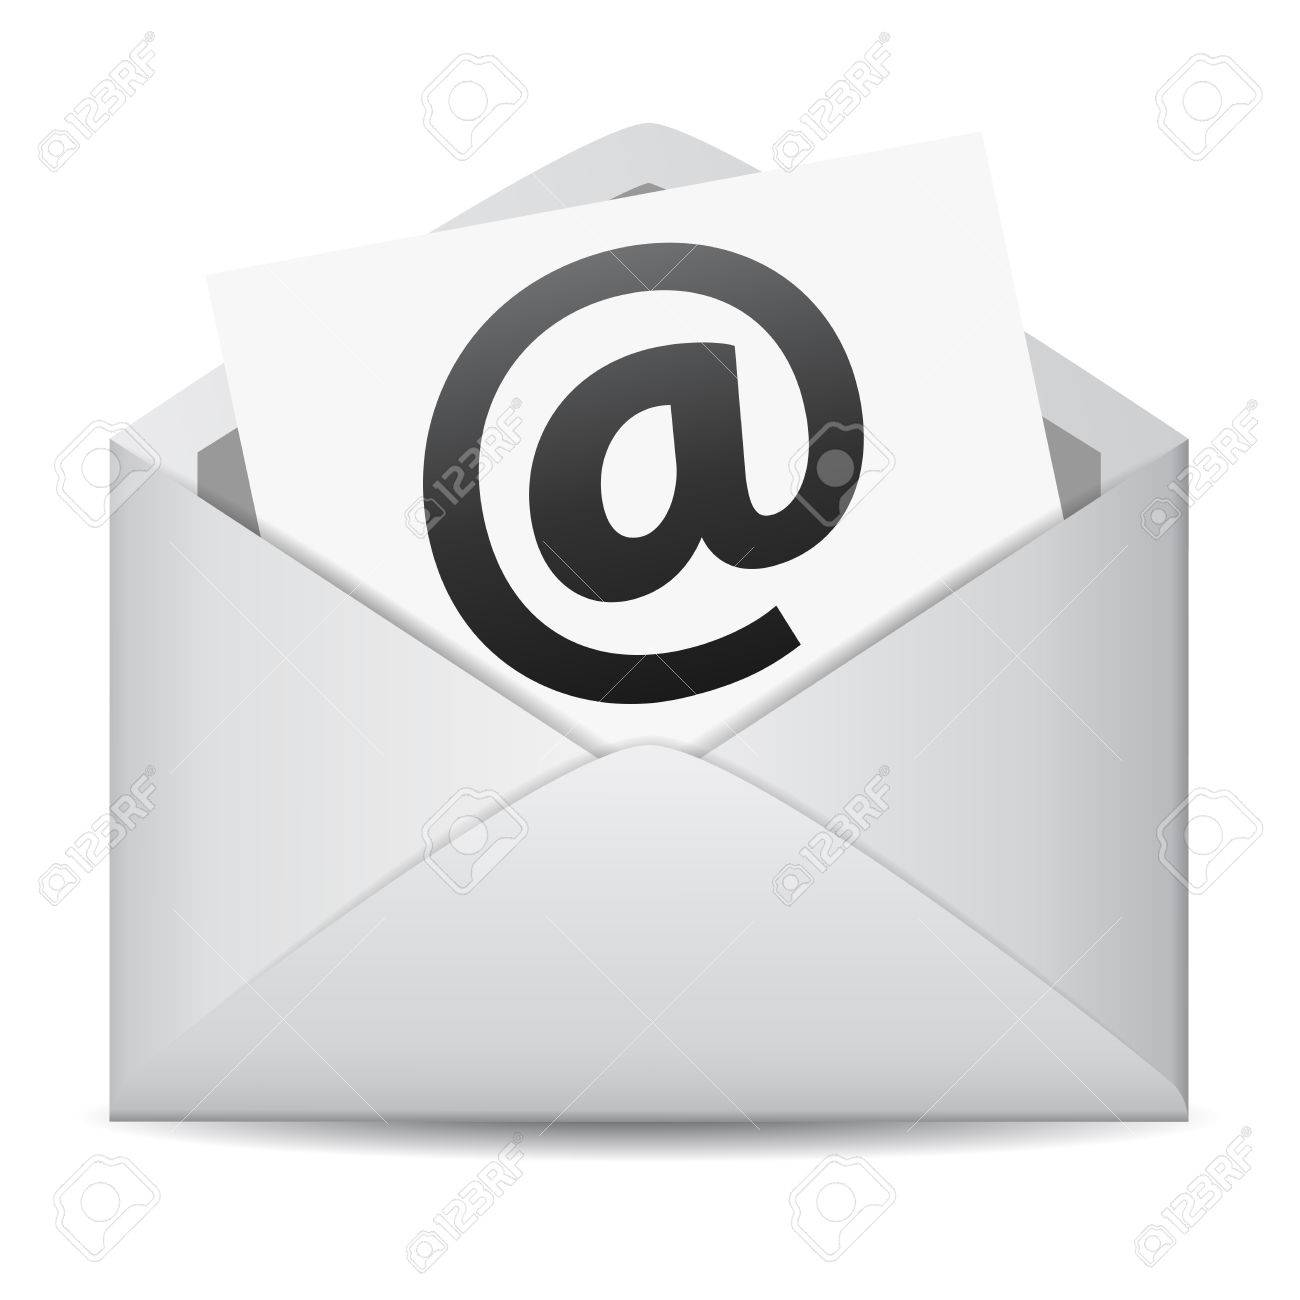 Mail Iconenvelope Outline Clipartletter Clipartemail Scientific Wiring Harness Clipart Of An Email Envelope Dodge Neon 39596277 E Web Contact And Business Newsletter Concept With Icon Black At